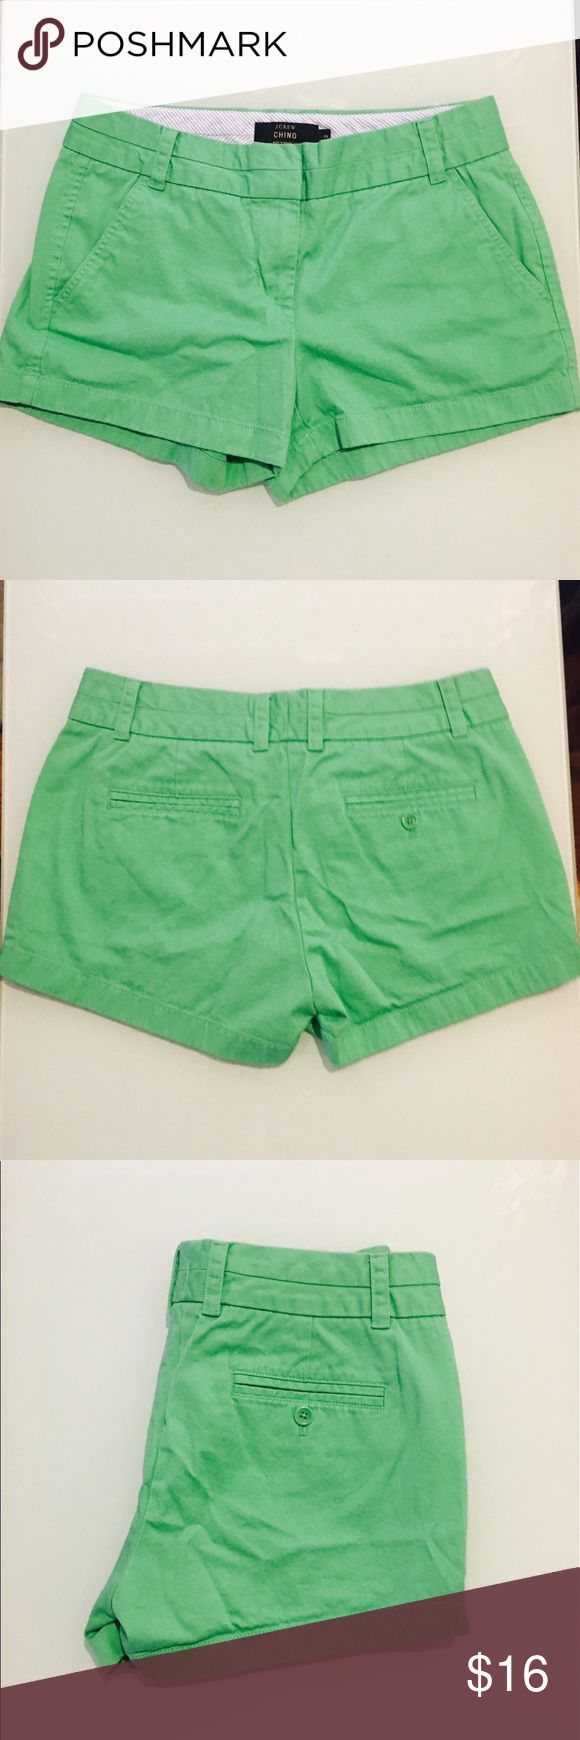 NWOT J. Crew 3 inch Lime Green Chino Shorts NWOT J. Crew 3 inch Lime Green Chino Shorts in size 2. Perfect new without tags J Crew shorts. Lime green. J. Crew Shorts